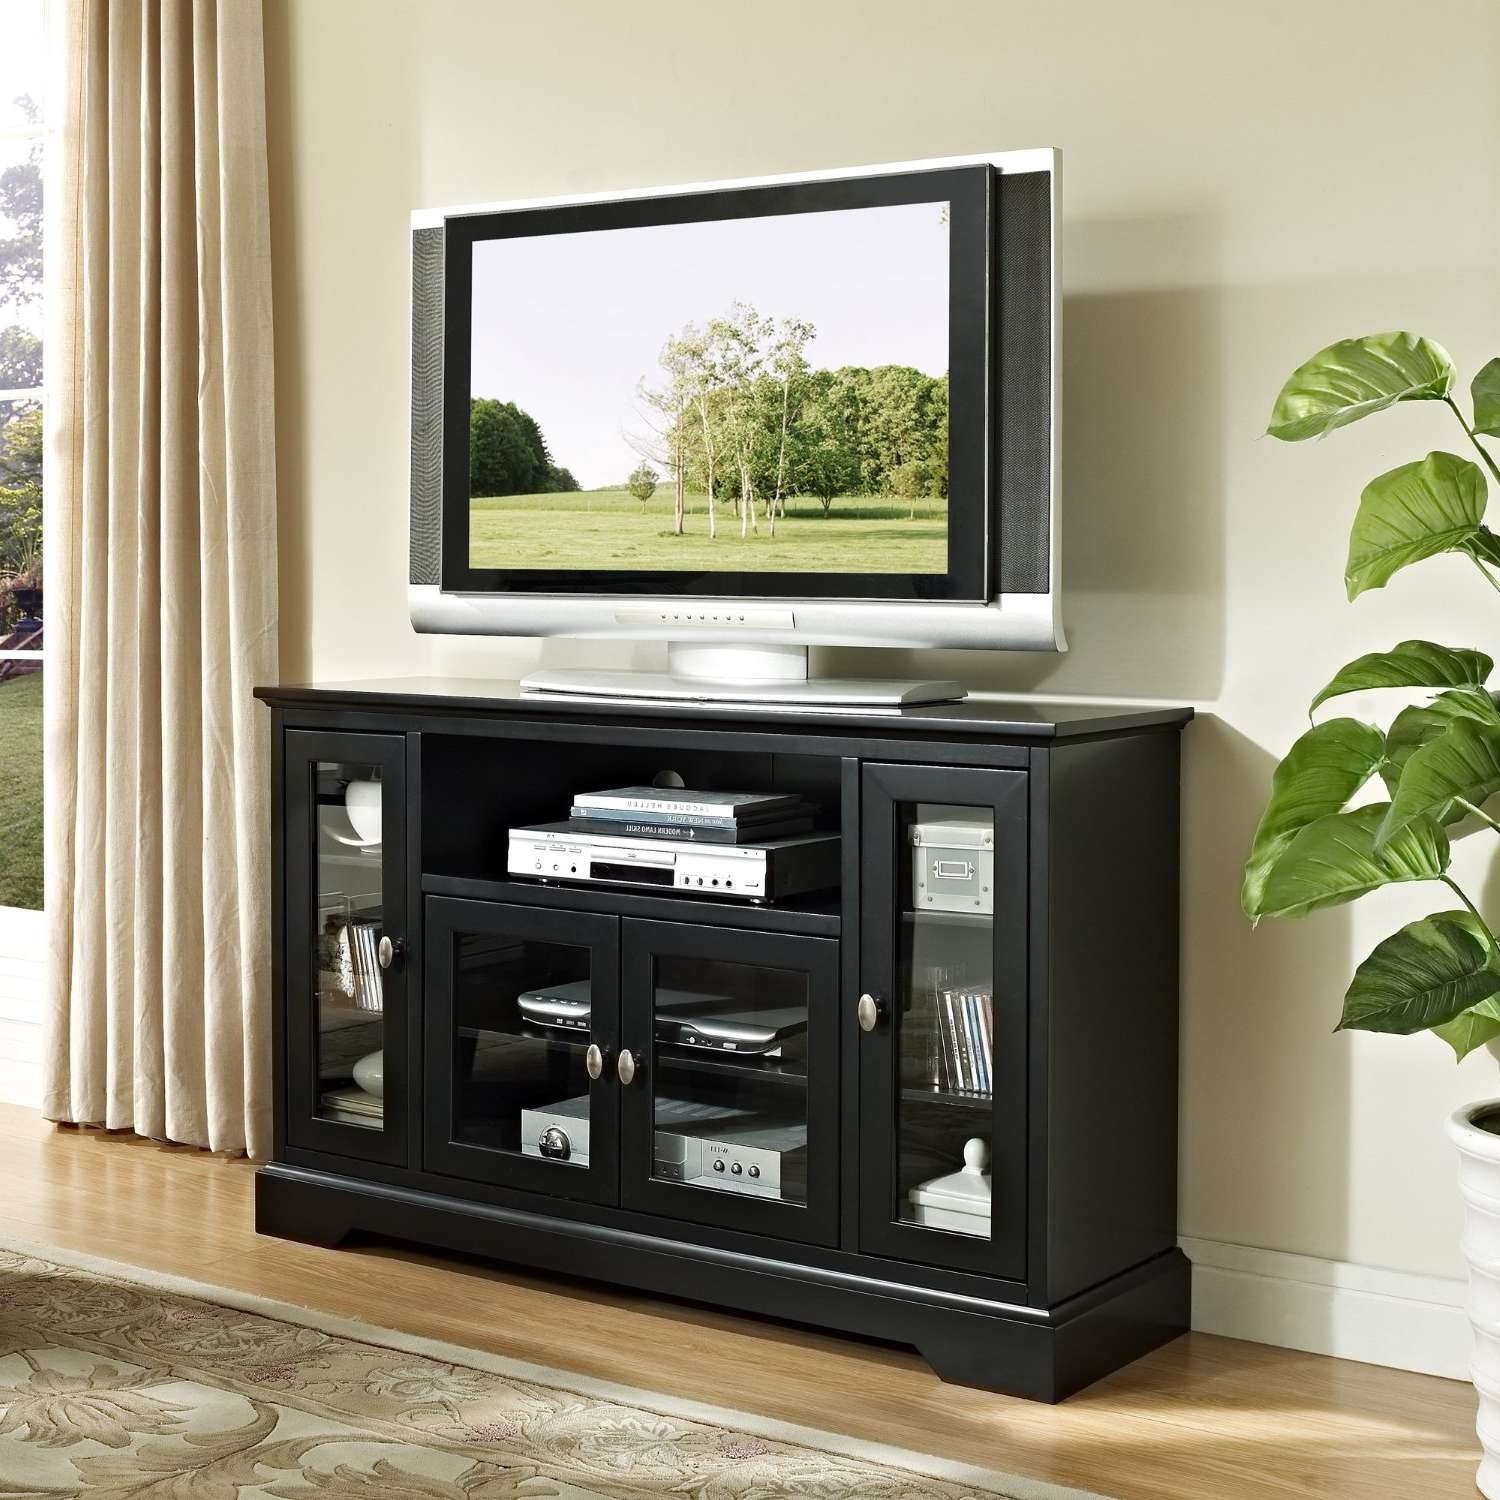 Tall Tv Stand For Bedroom And Bella Stands Trends Images For Wood Tv Stands With Glass Top (View 8 of 15)